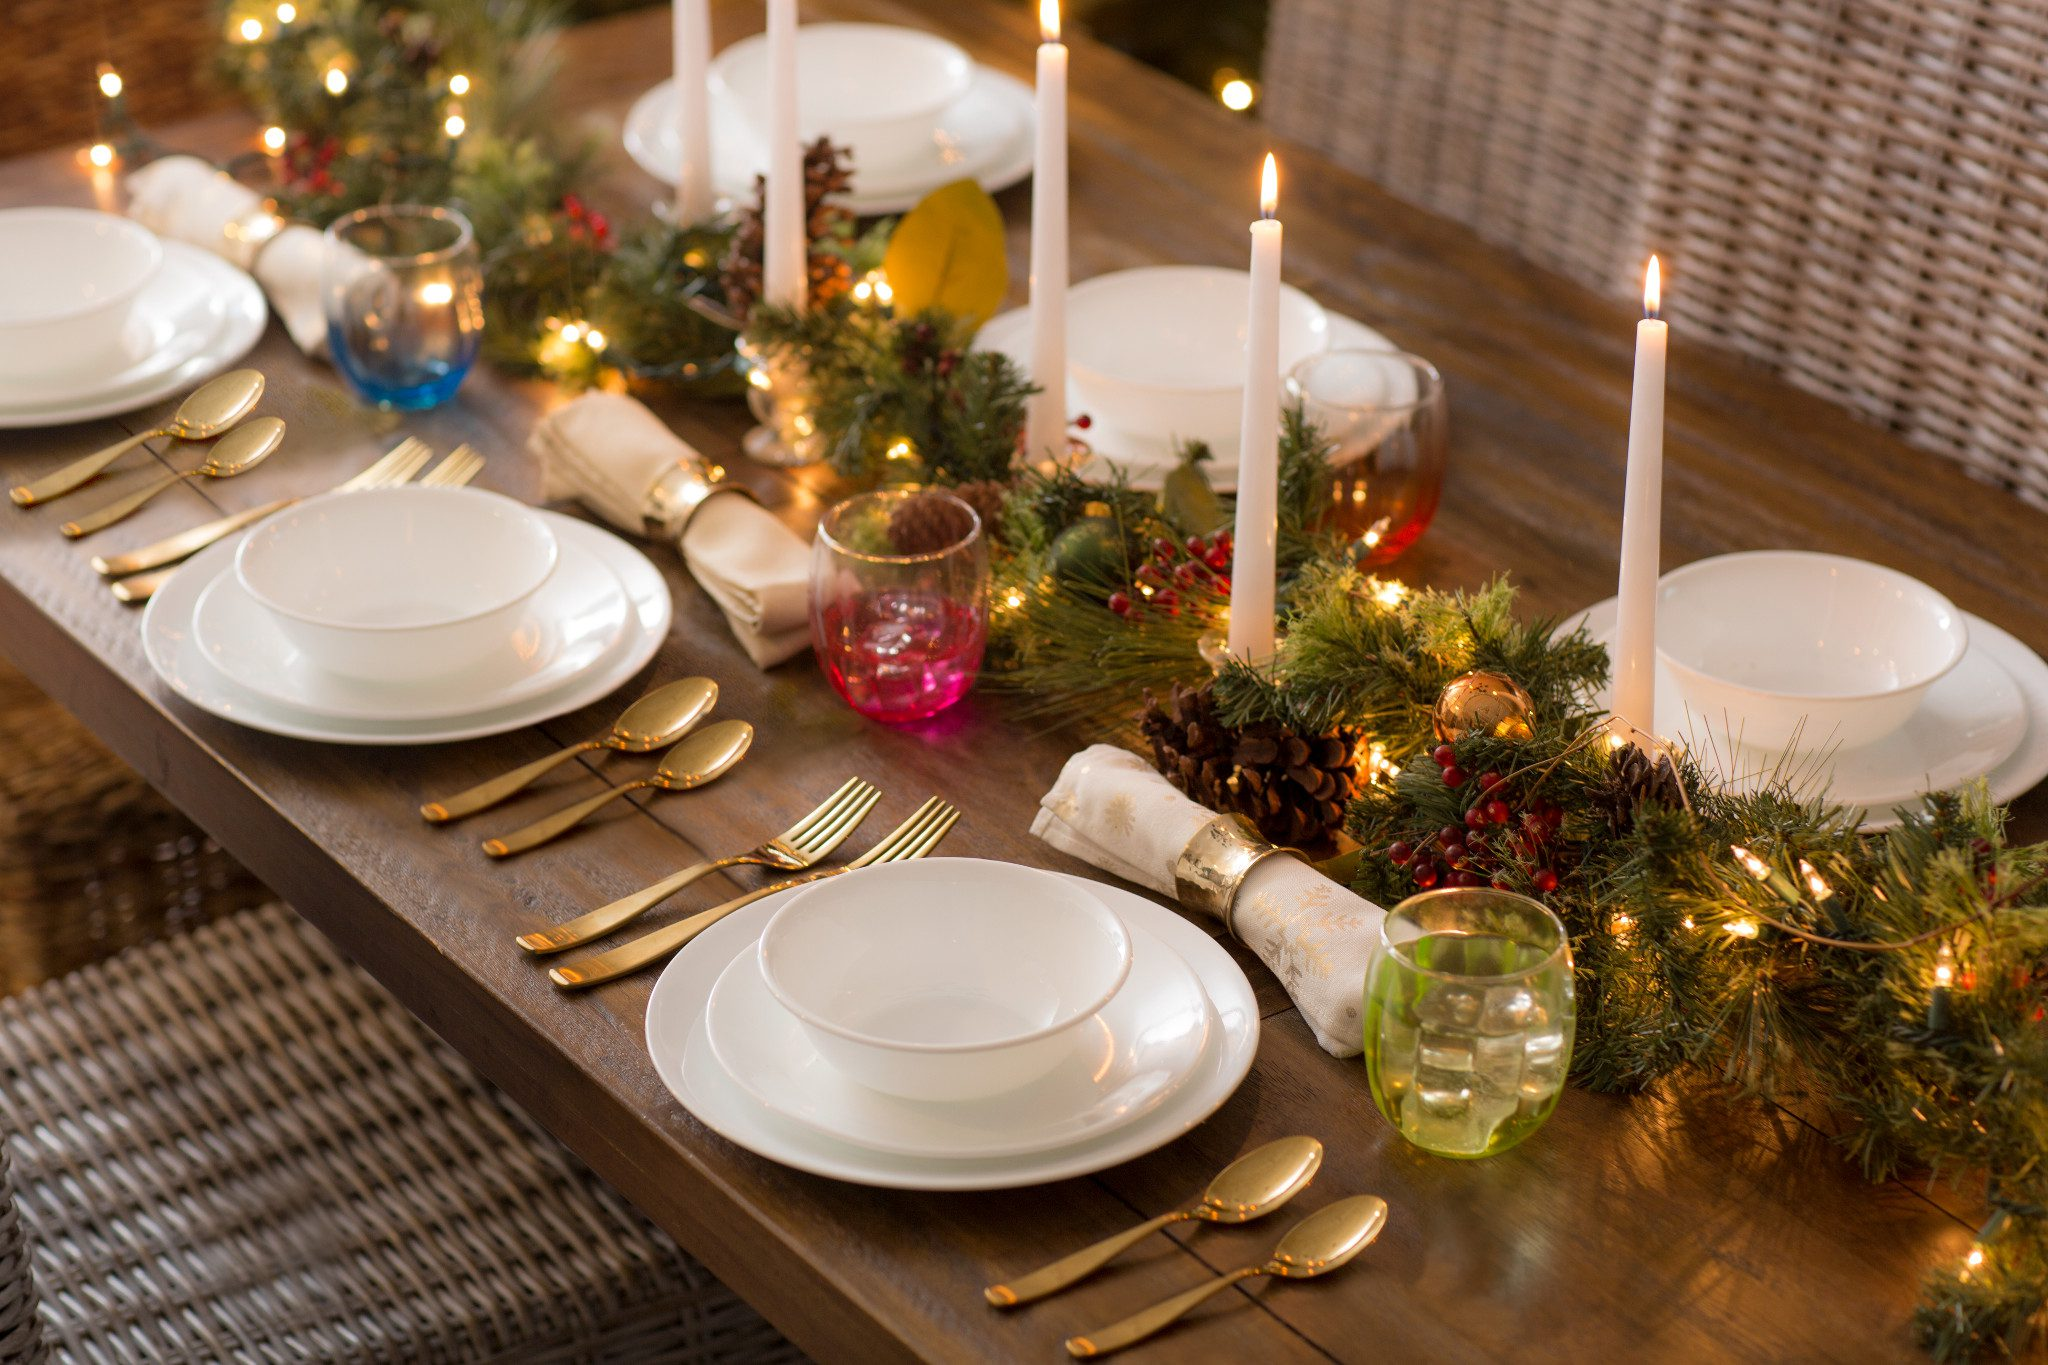 set the table with corelle